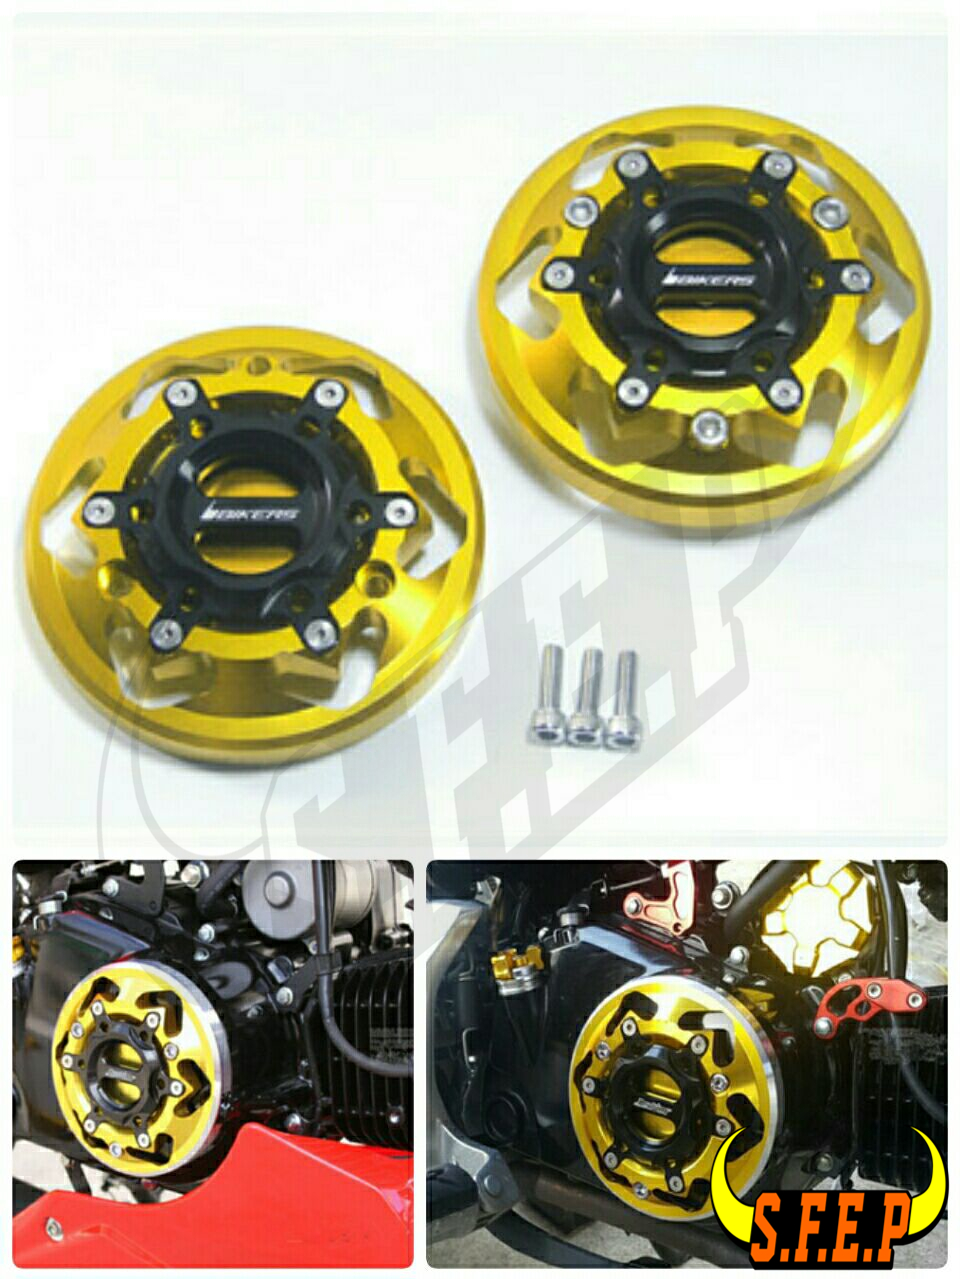 Motorcycle CNC Aluminum Engine Cover Protector Set For Honda GROM MSX125 MSX125SF